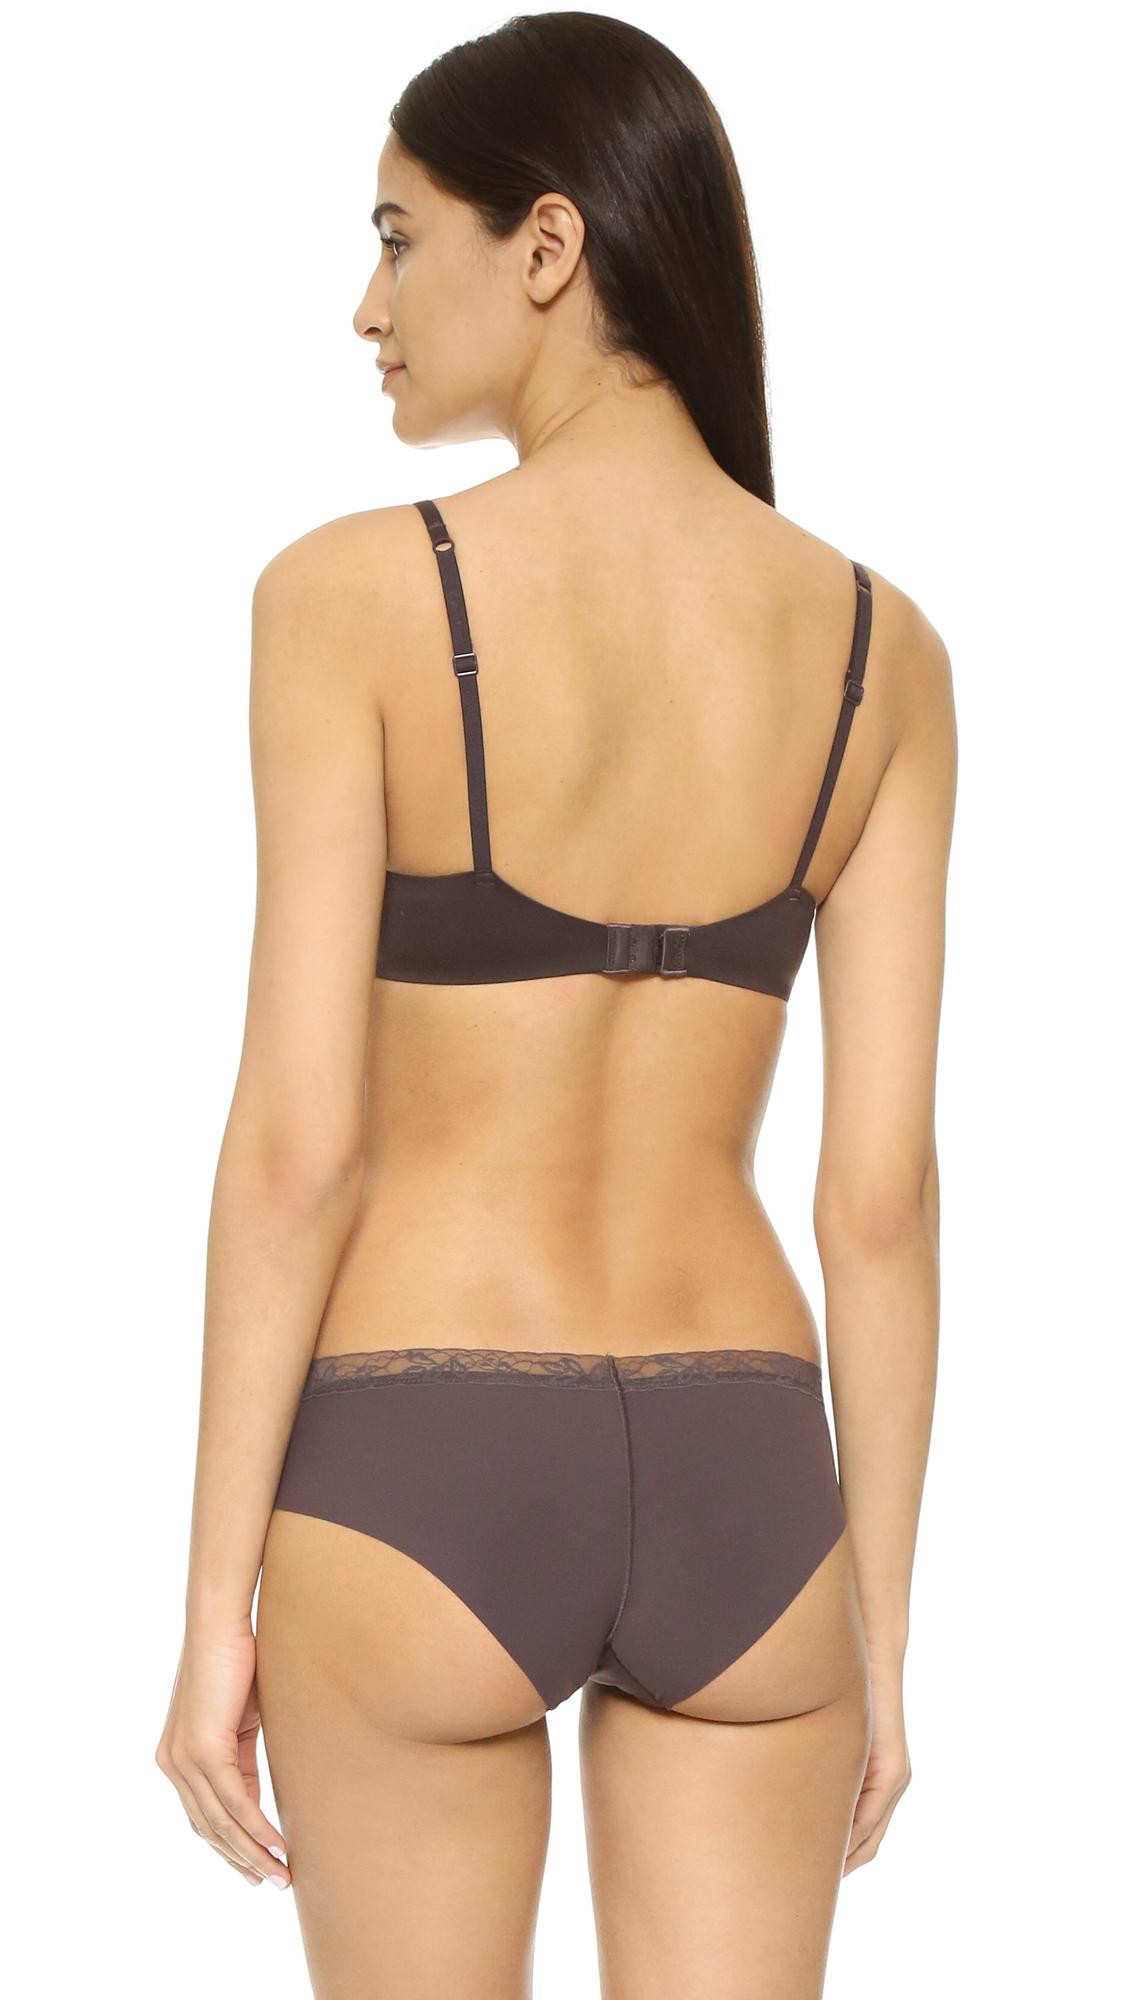 lyst calvin klein perfectly fit modern t shirt bra in brown. Black Bedroom Furniture Sets. Home Design Ideas